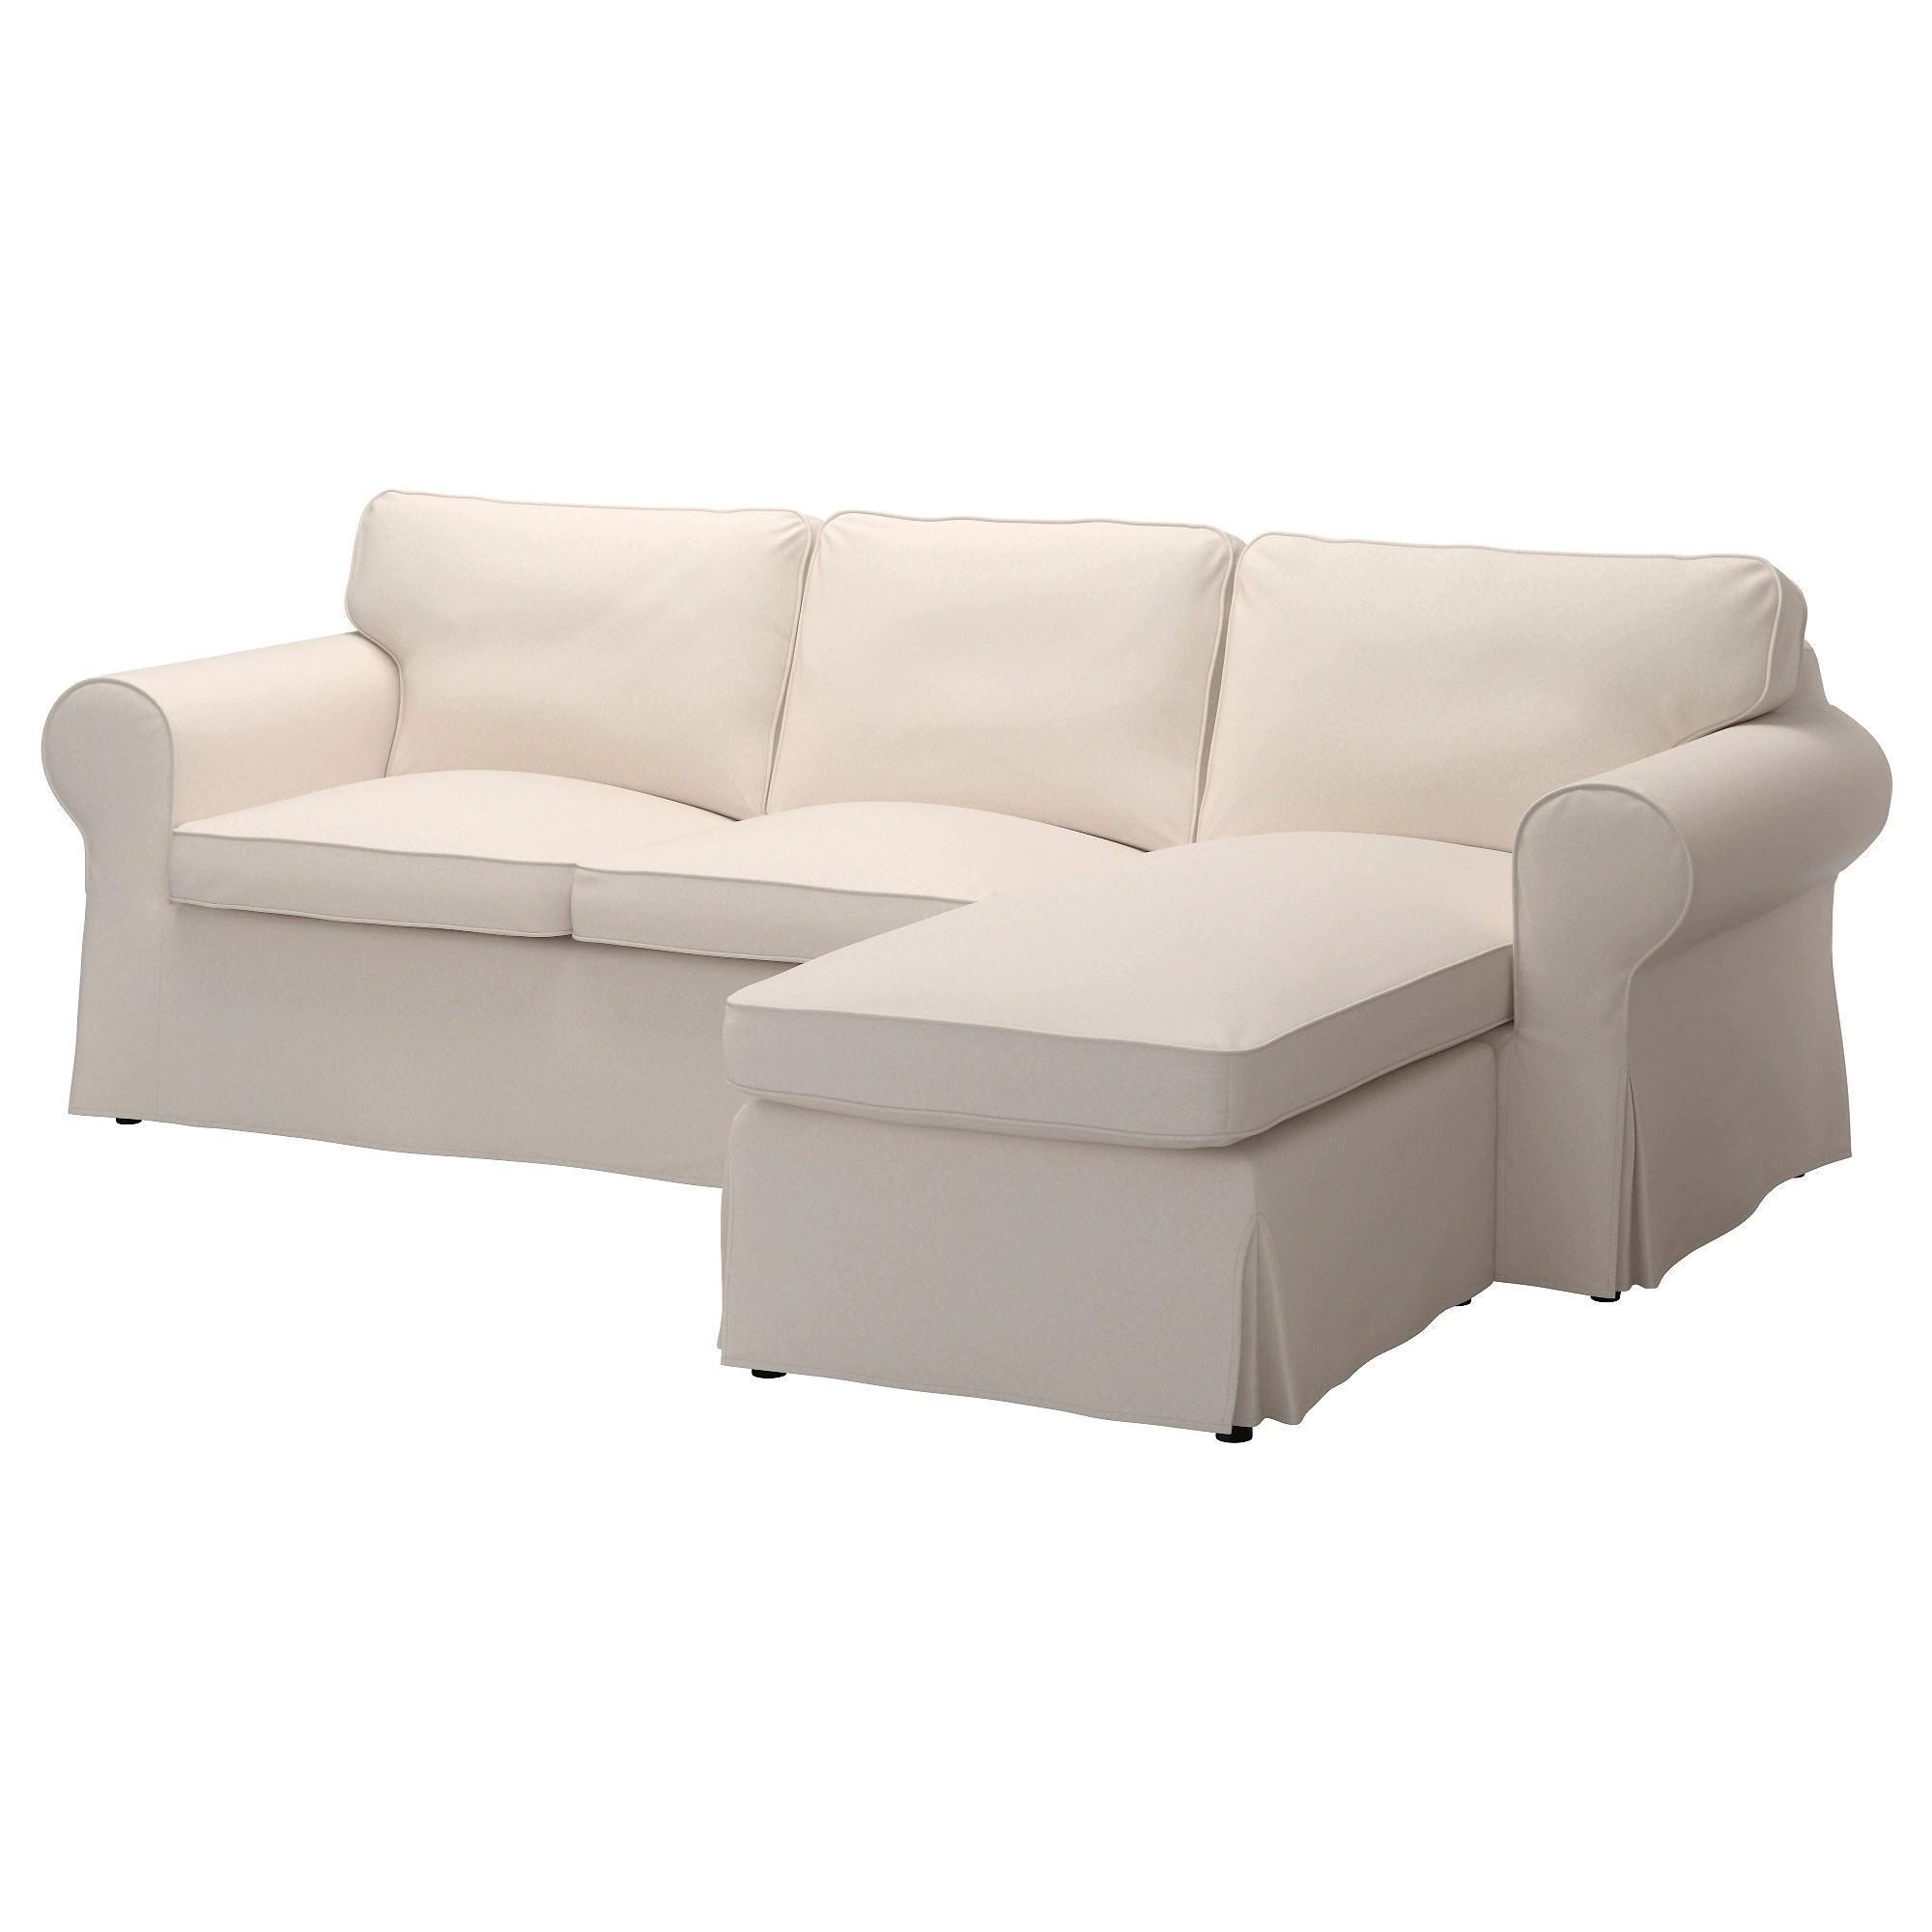 Sofa Ikea Chaise Ektorp Sofa With Chaise Lingbo Multicolor